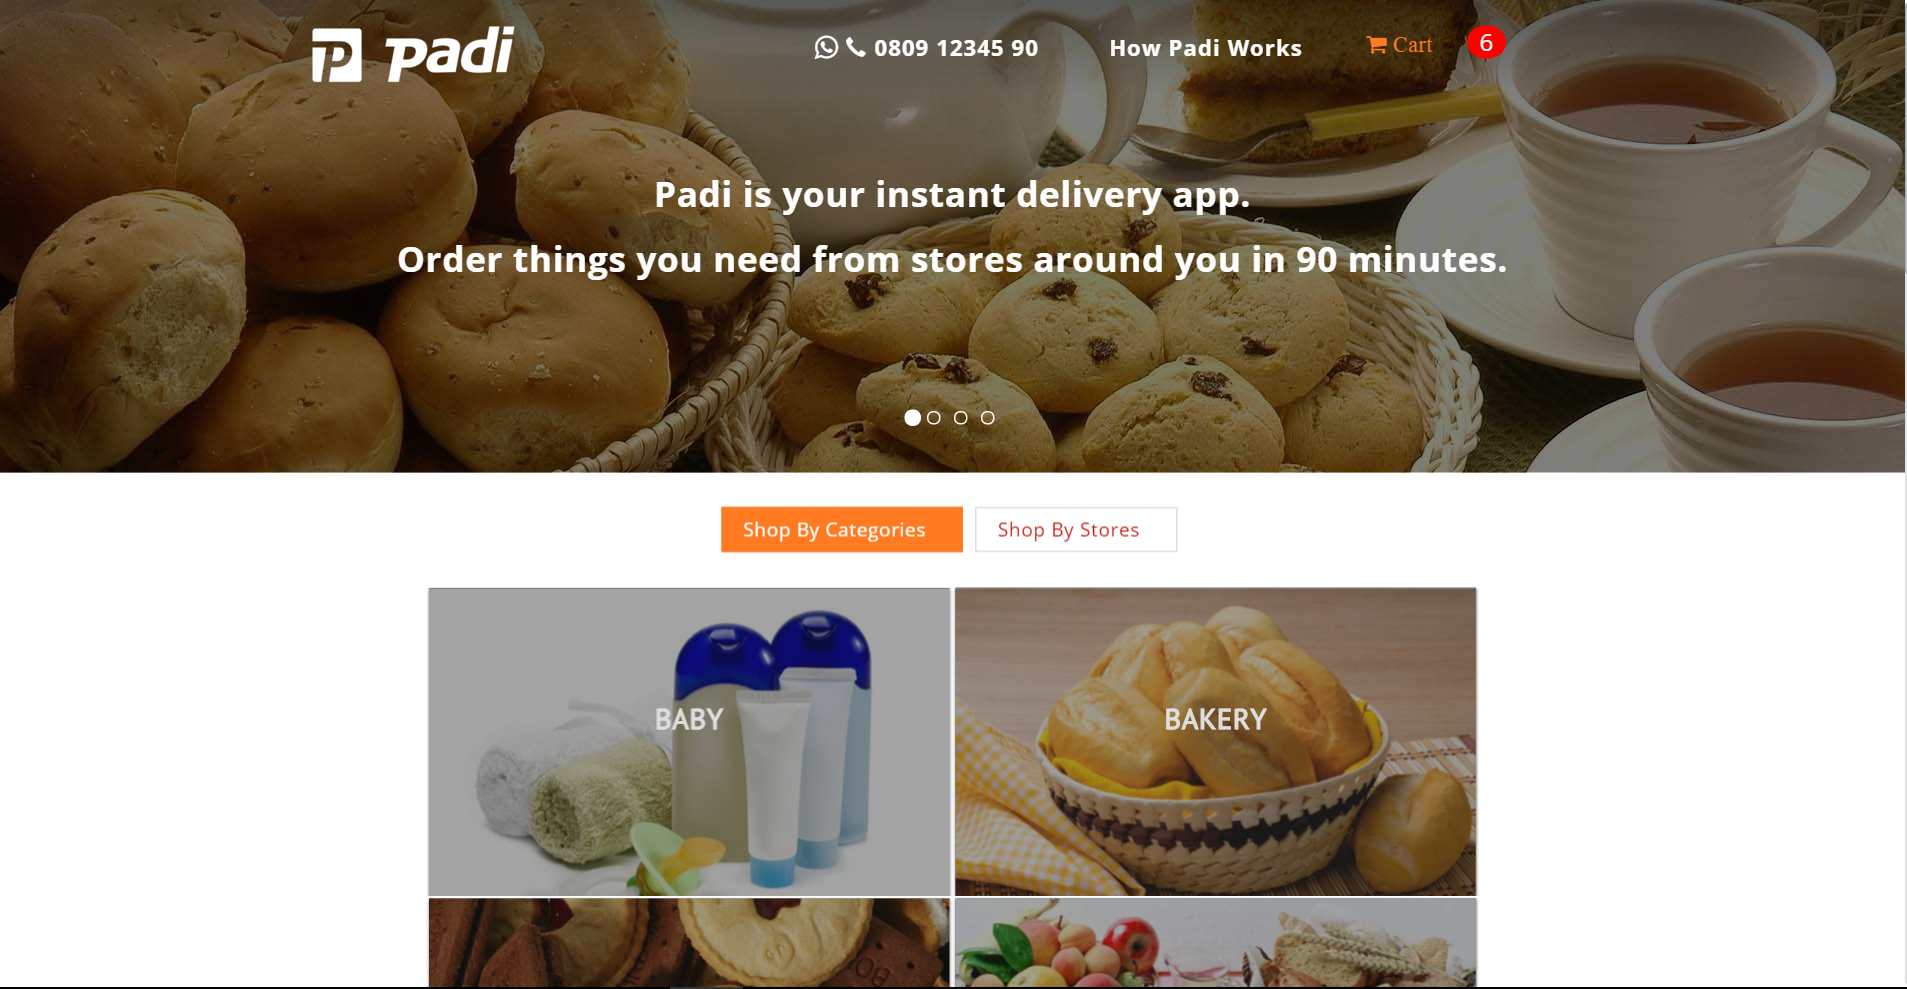 It's goodbye to 24-hr delivery as Padi.ng partners stores around you for 90 min delivery